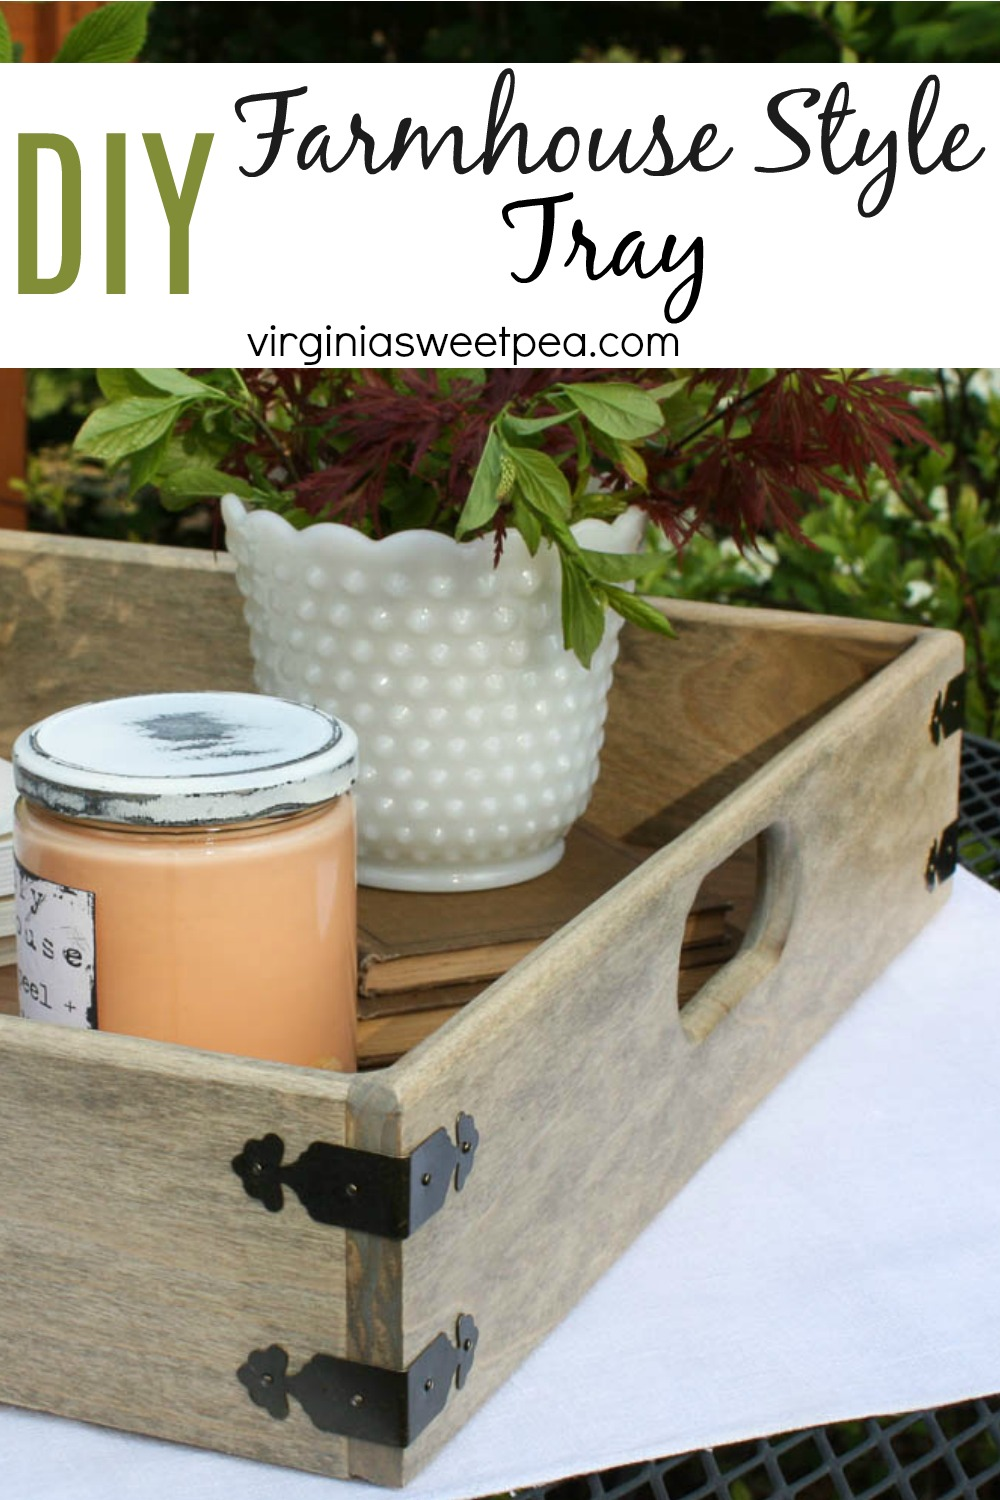 DIY Farmhouse Style Tray - Get the building plans for making this farmhouse style tray.  It's perfect for home decor or using to serve food or drinks at your next party.  #traybuildingplans #diytray #farmhousestyletray #howtomakeatray via @spaula